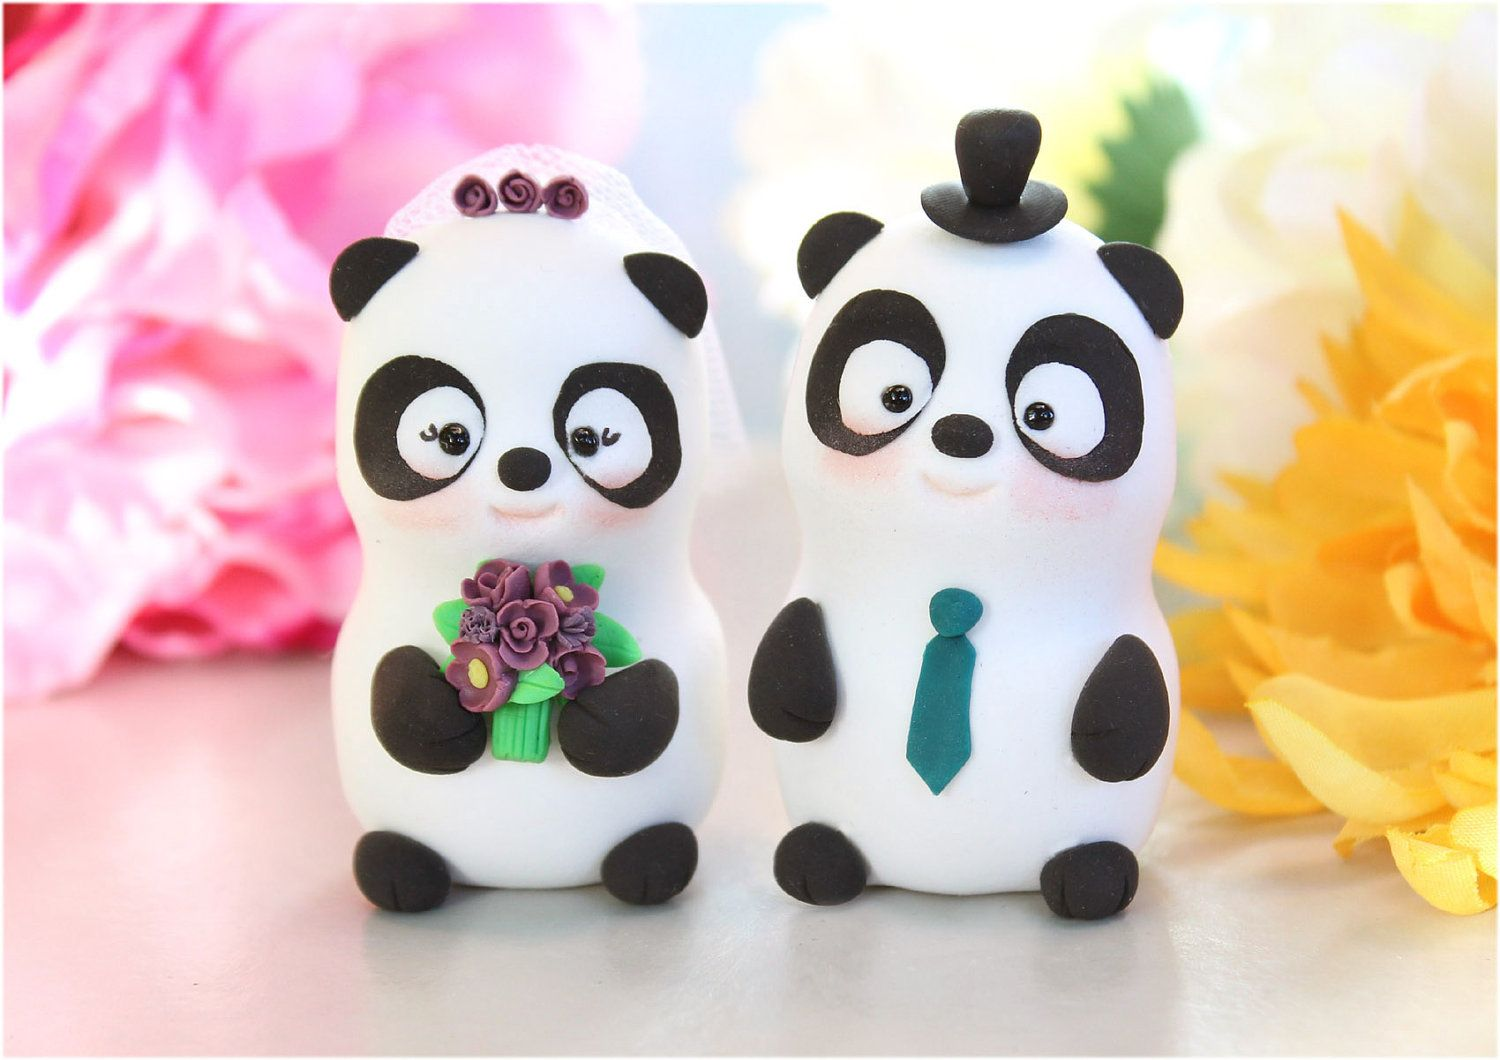 Panda unique wedding cake toppers bride and groom